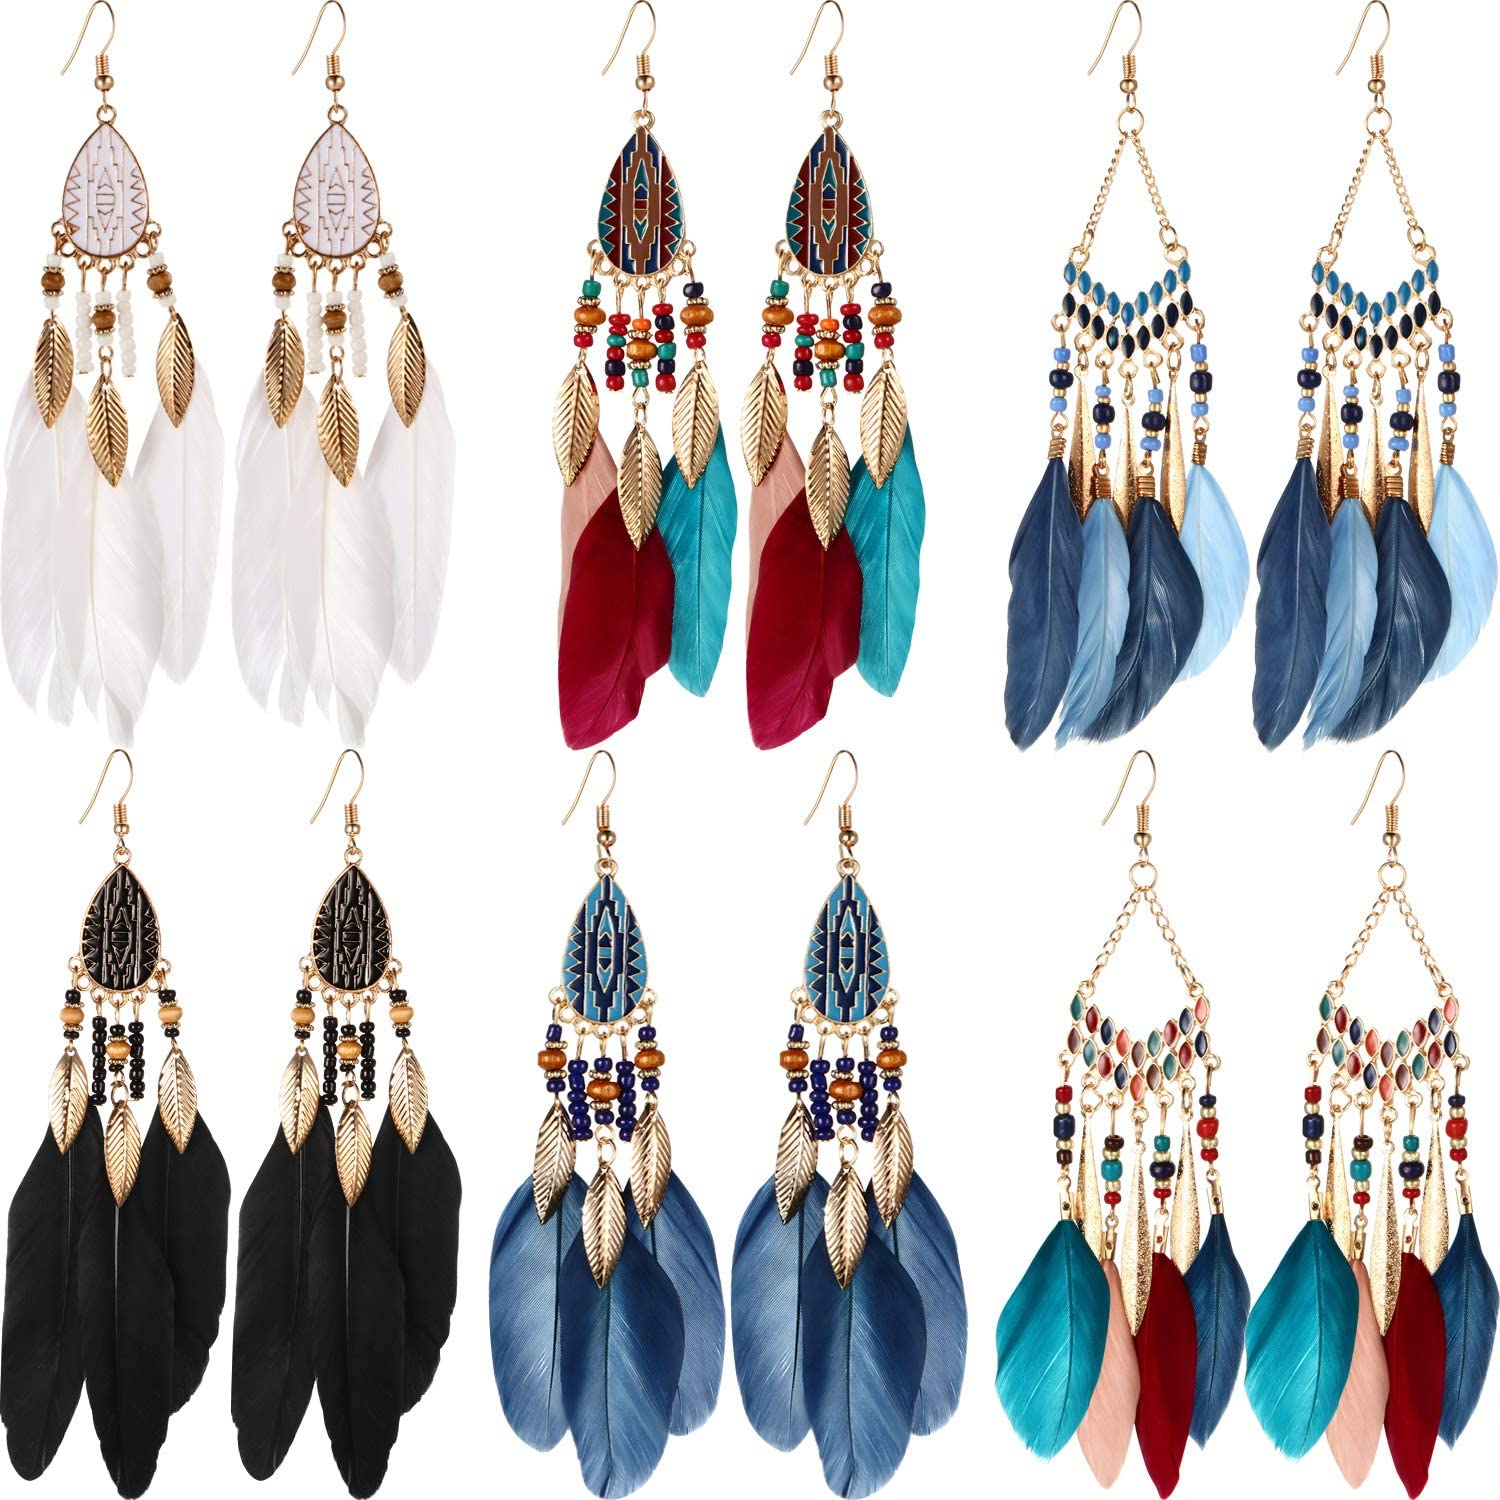 6 Pairs Women Faux Feather Earrings Bohemian Fringe Tassel Long Drop Dangle Earrings Set with Dream Catcher Design for Women Girls (Style 1)